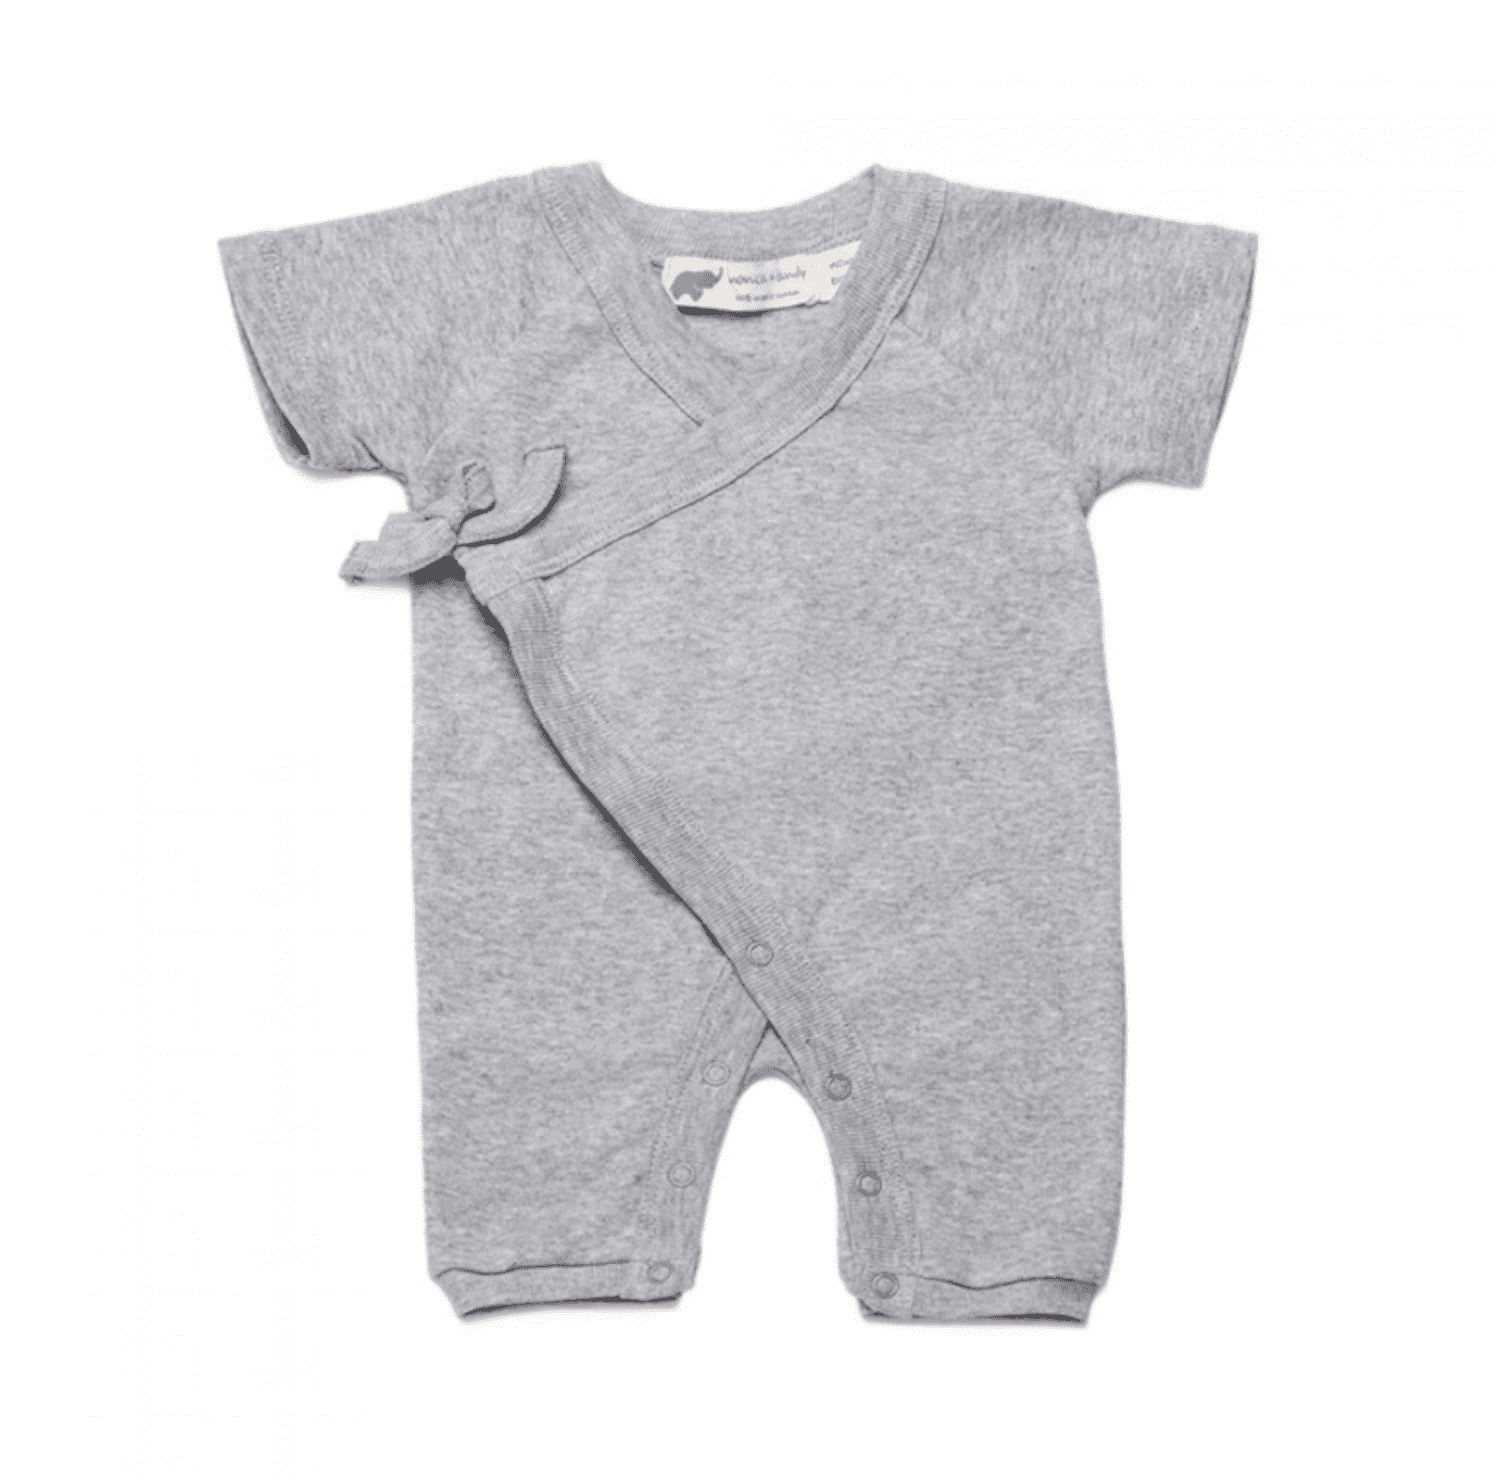 d59b2b4ab45b2d 20 Organic Baby Clothing Brands Every Mom Should Know